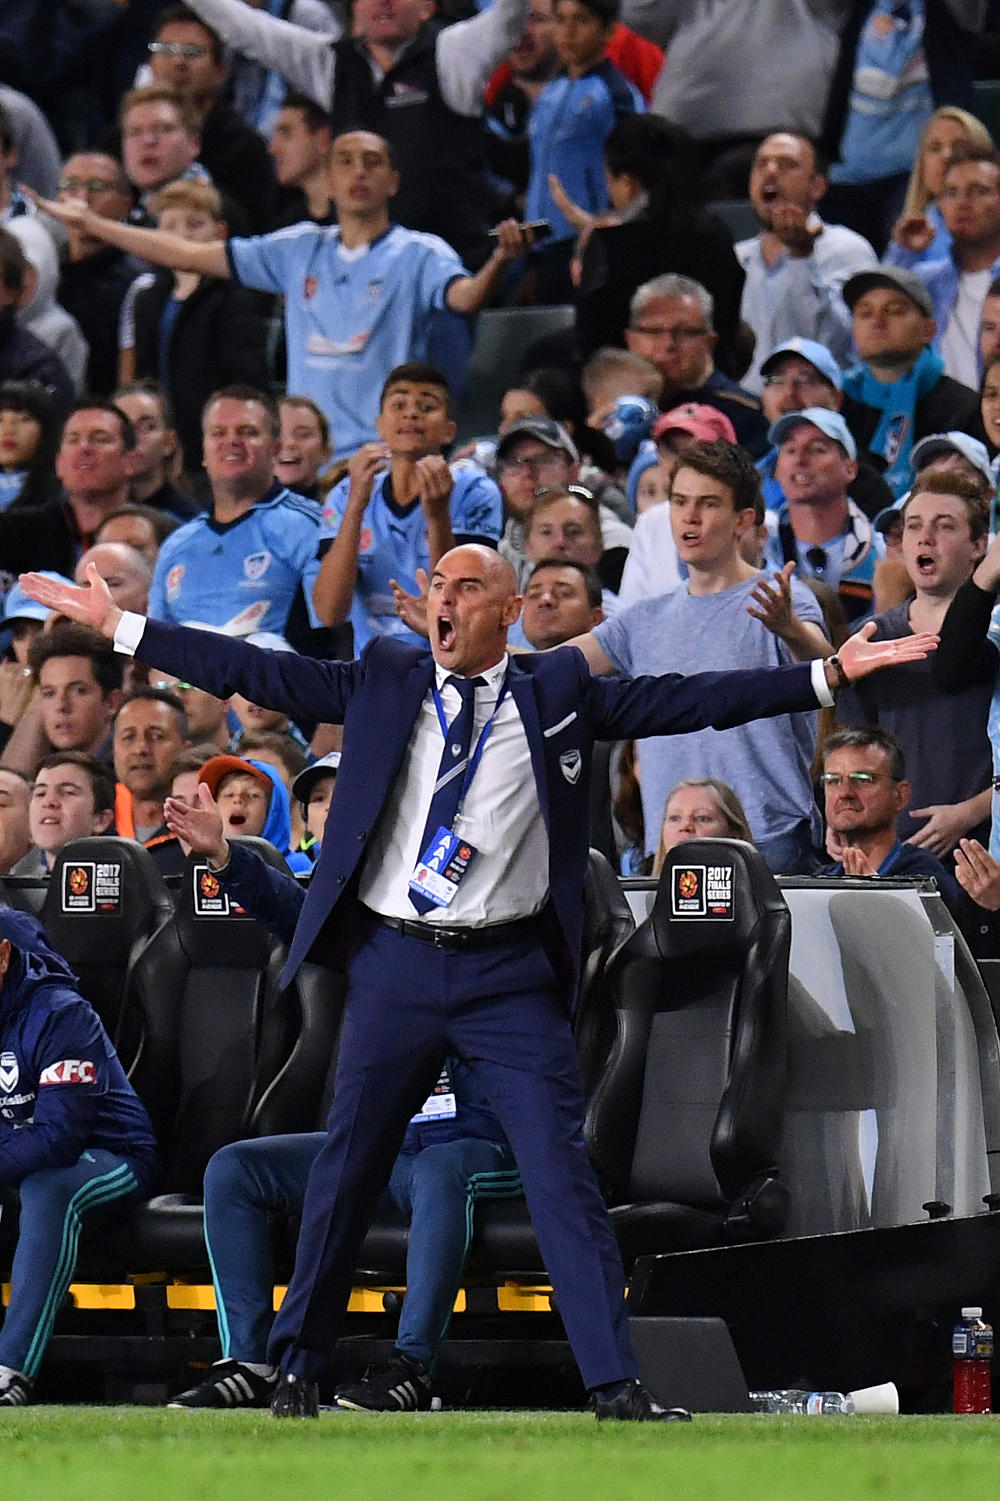 Kevin Muscat Melbourne Victory A-League Grand Final 2017 tall